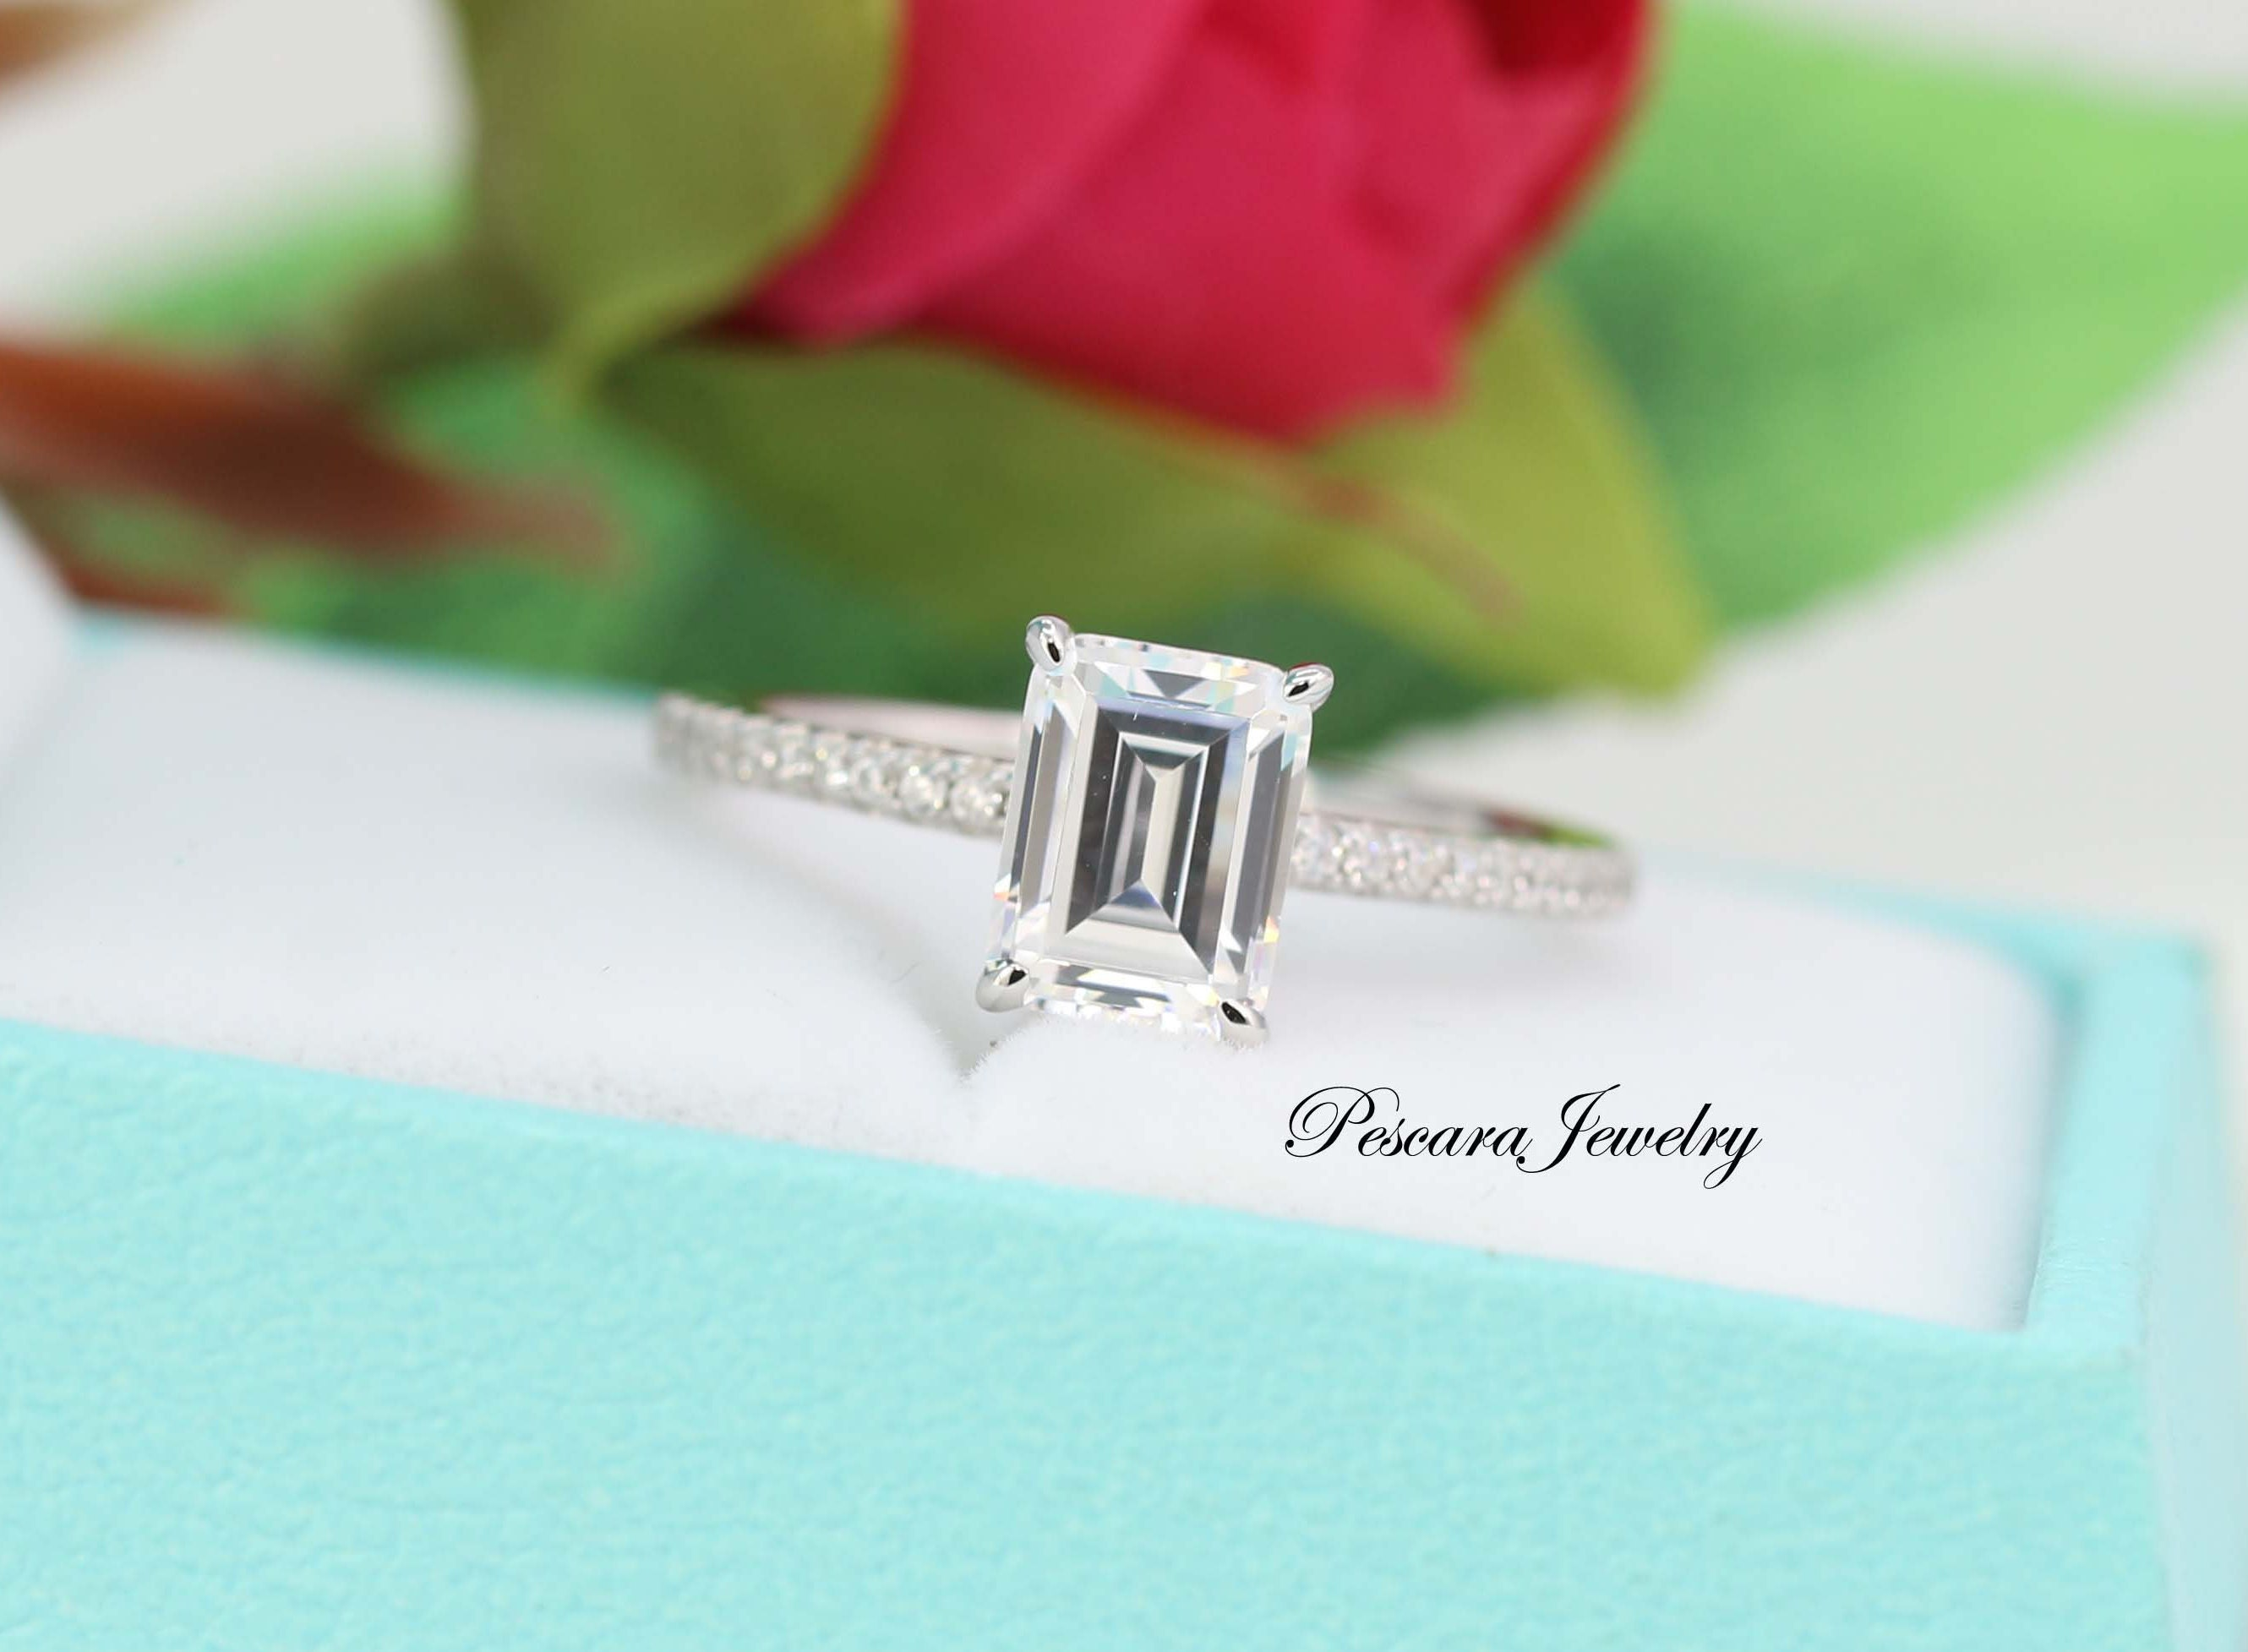 8X6 MM Emerald Cut Diamond Stimulant Engagement Ring Stackable Ring Solid 925 Sterling Silver Solitaire Ring 2Ct promise ring